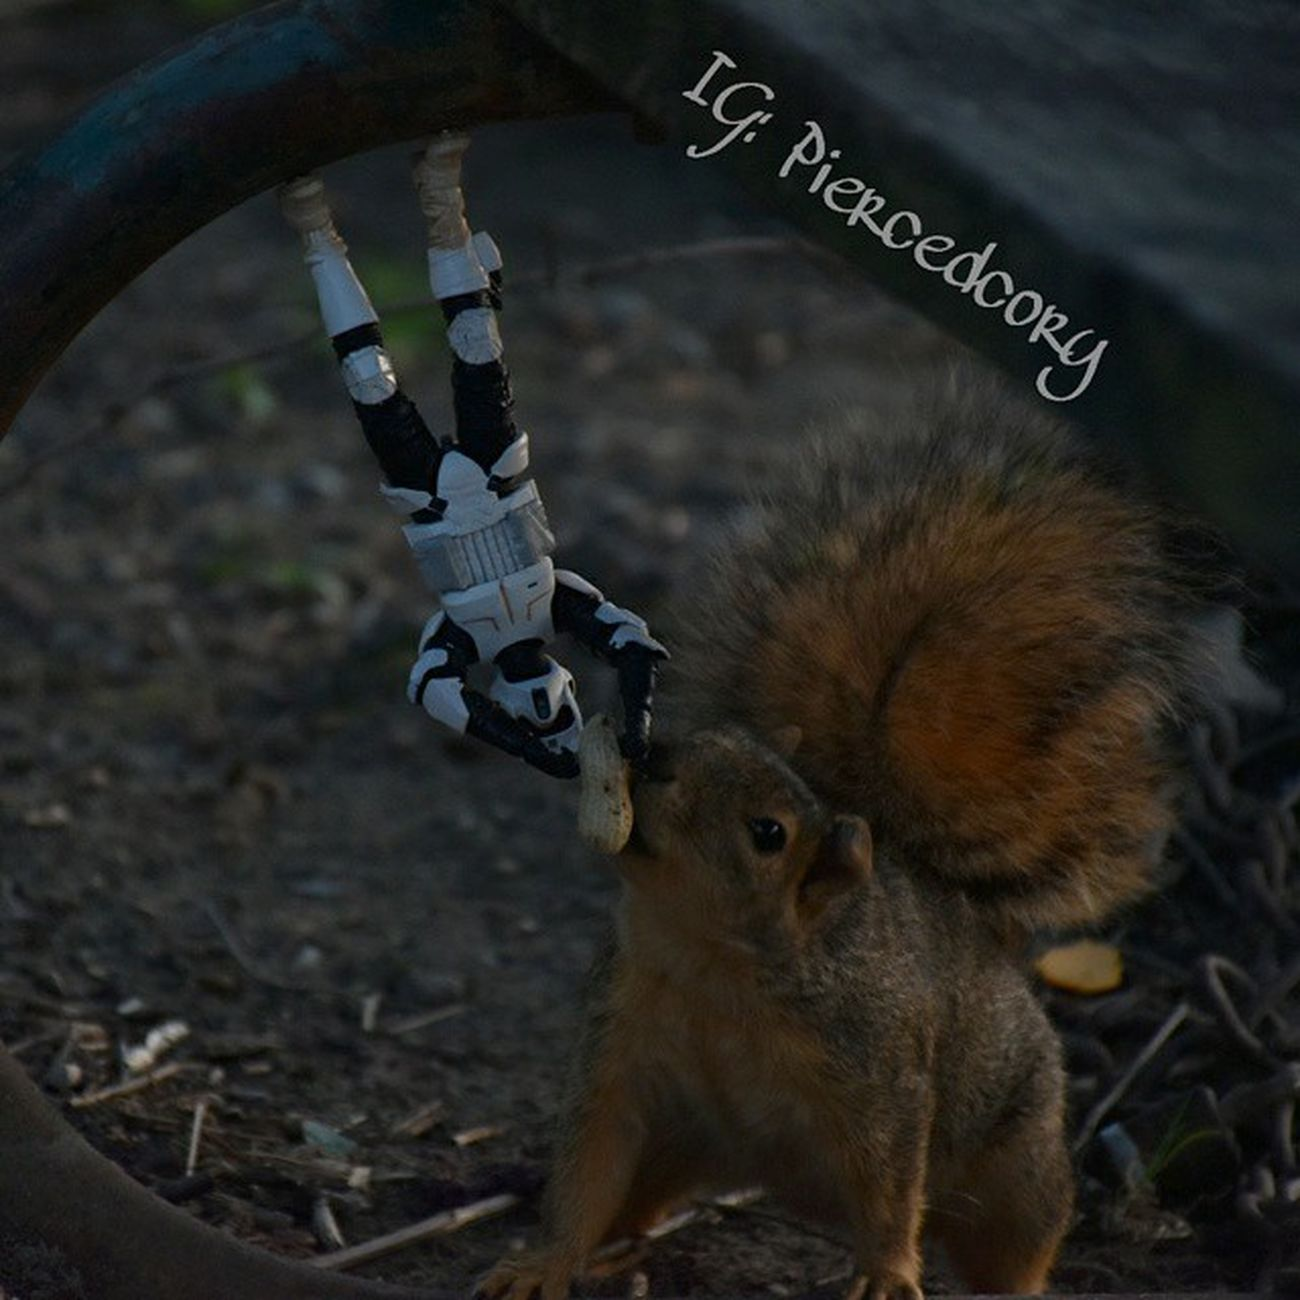 Eat your heart out spiderman! Funwiththesquirrels Scouttrooper Trooper_life